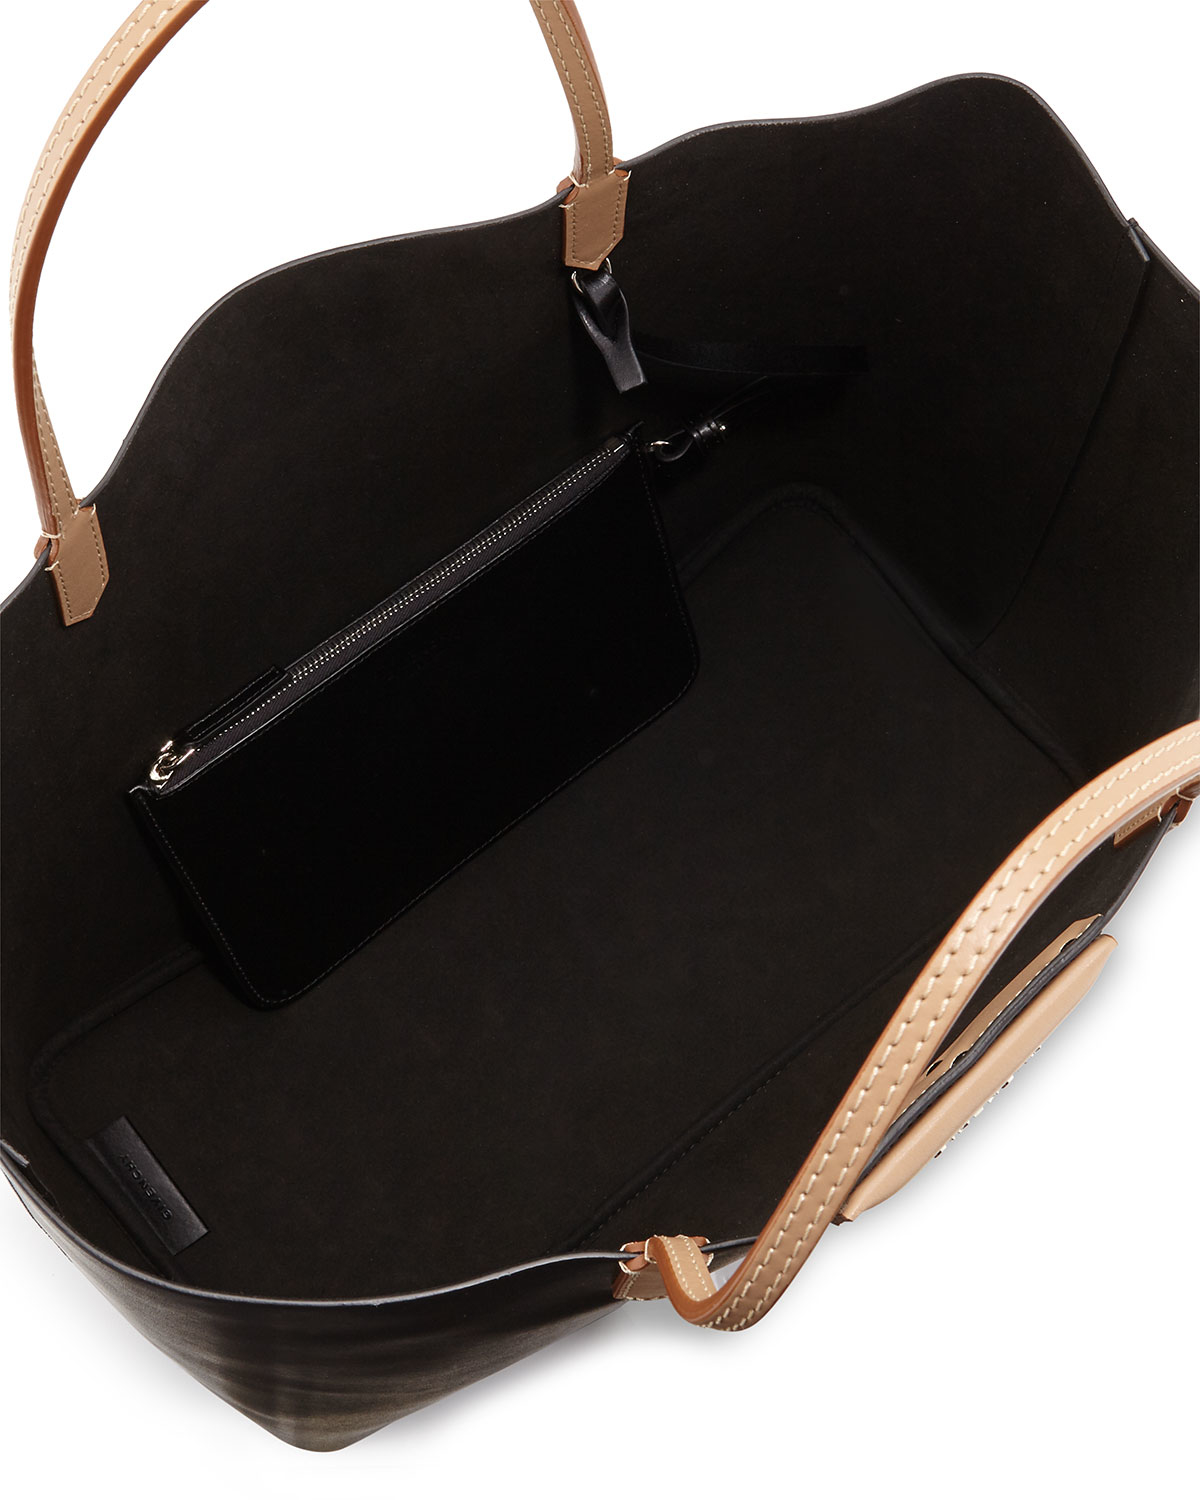 0e66480d28b9 Gallery. Previously sold at  Bergdorf Goodman · Women s Shopper Bags  Women s Givenchy ...